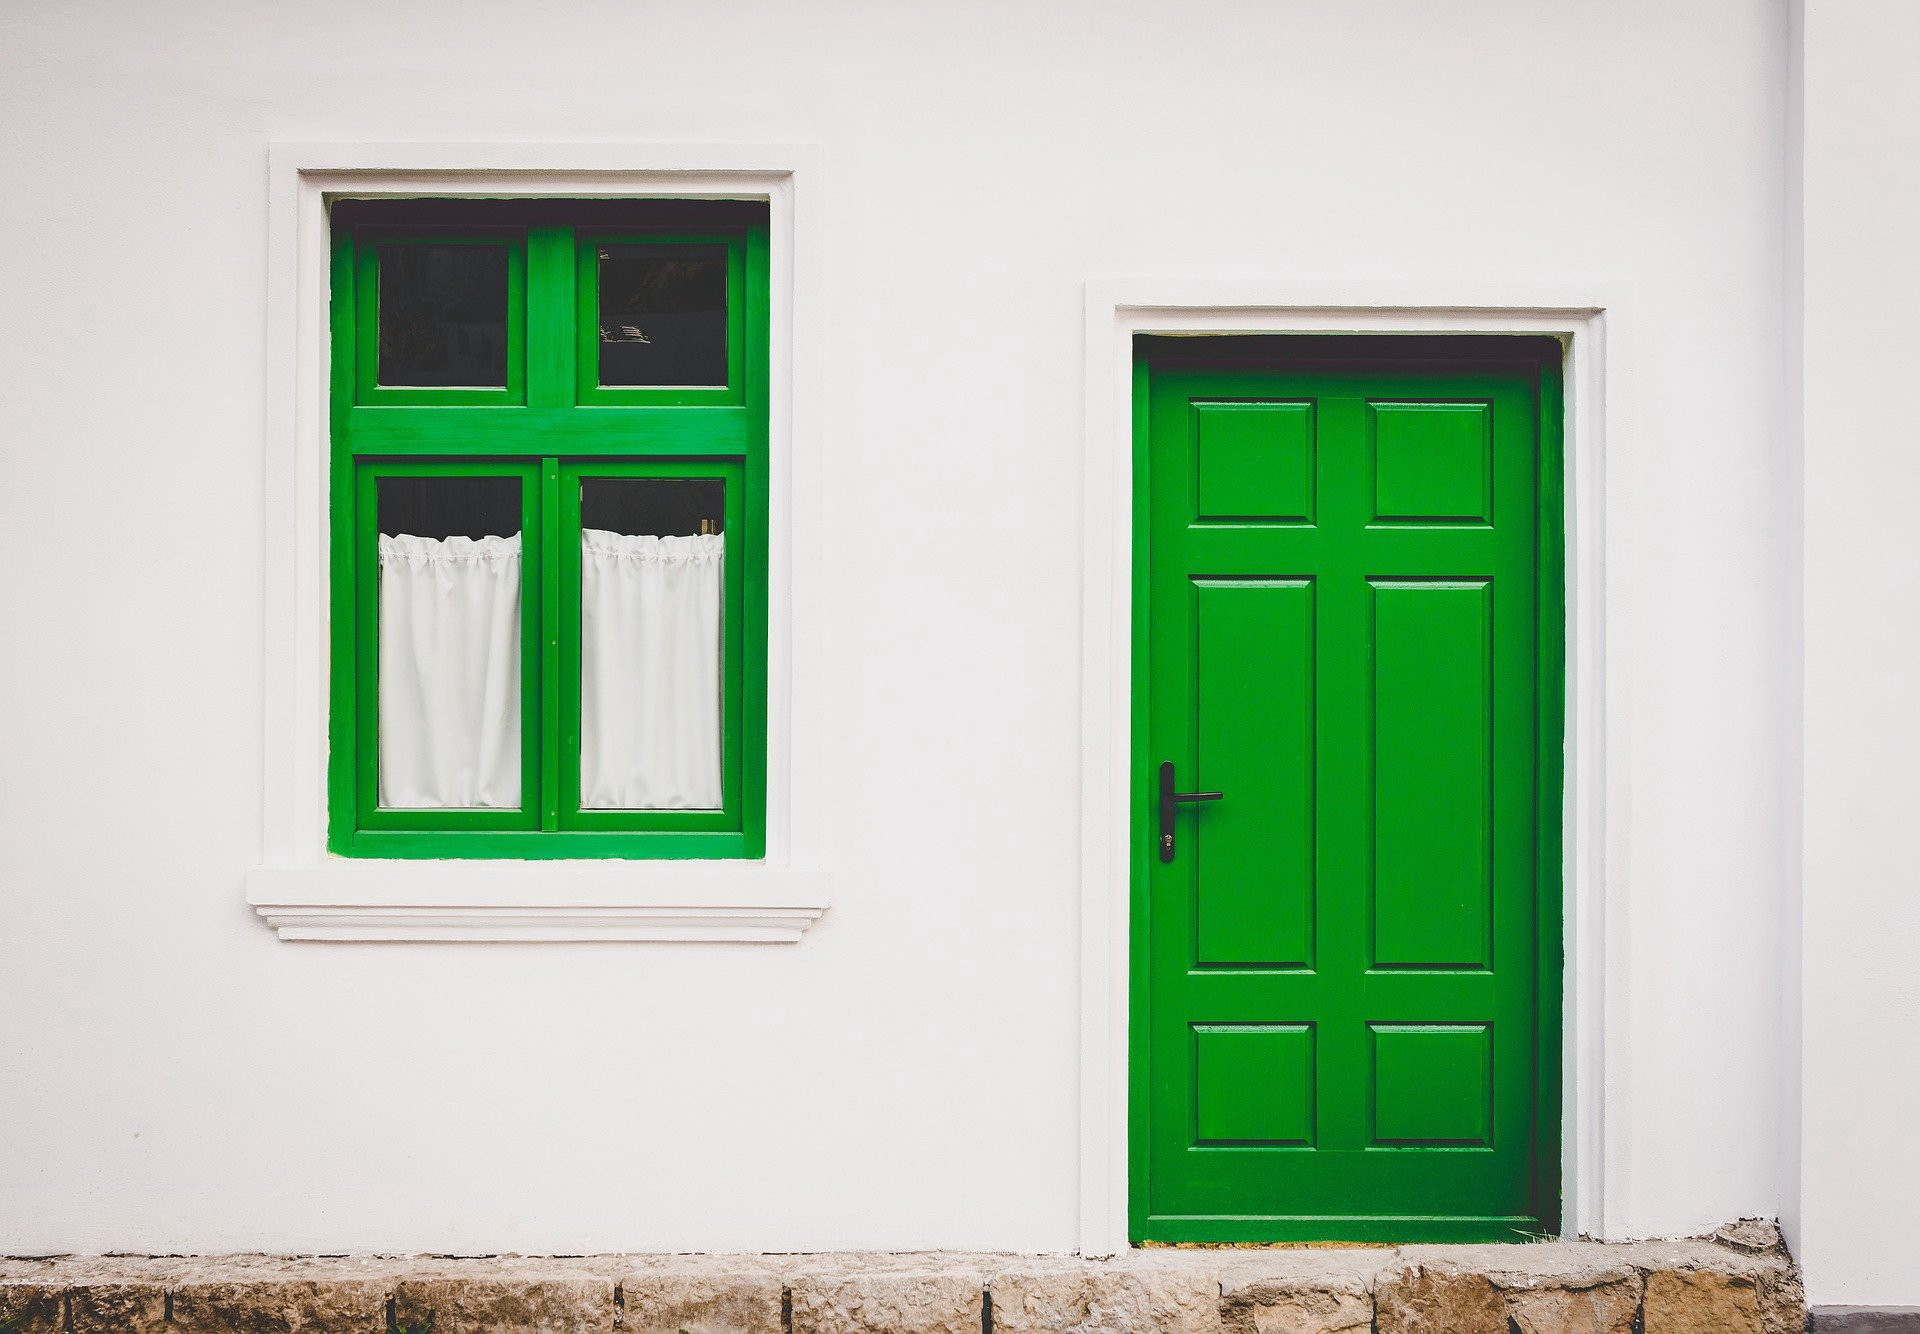 A green window and door on a clean white wall